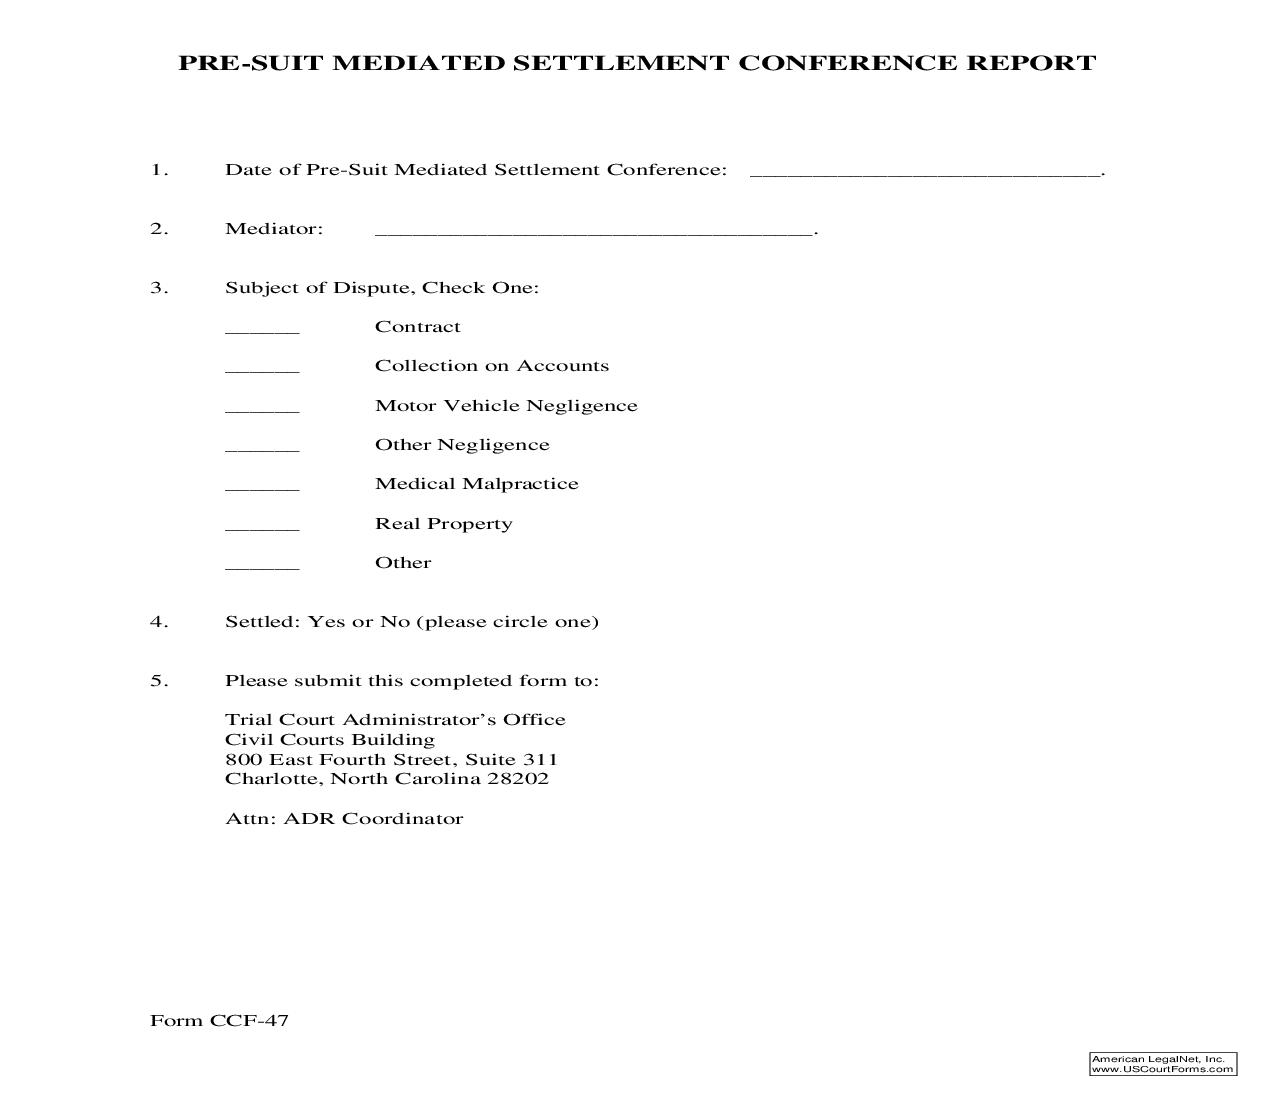 Pre-Suit Mediated Settlement Conference Report {CCF-47} | Pdf Fpdf Doc Docx | North Carolina